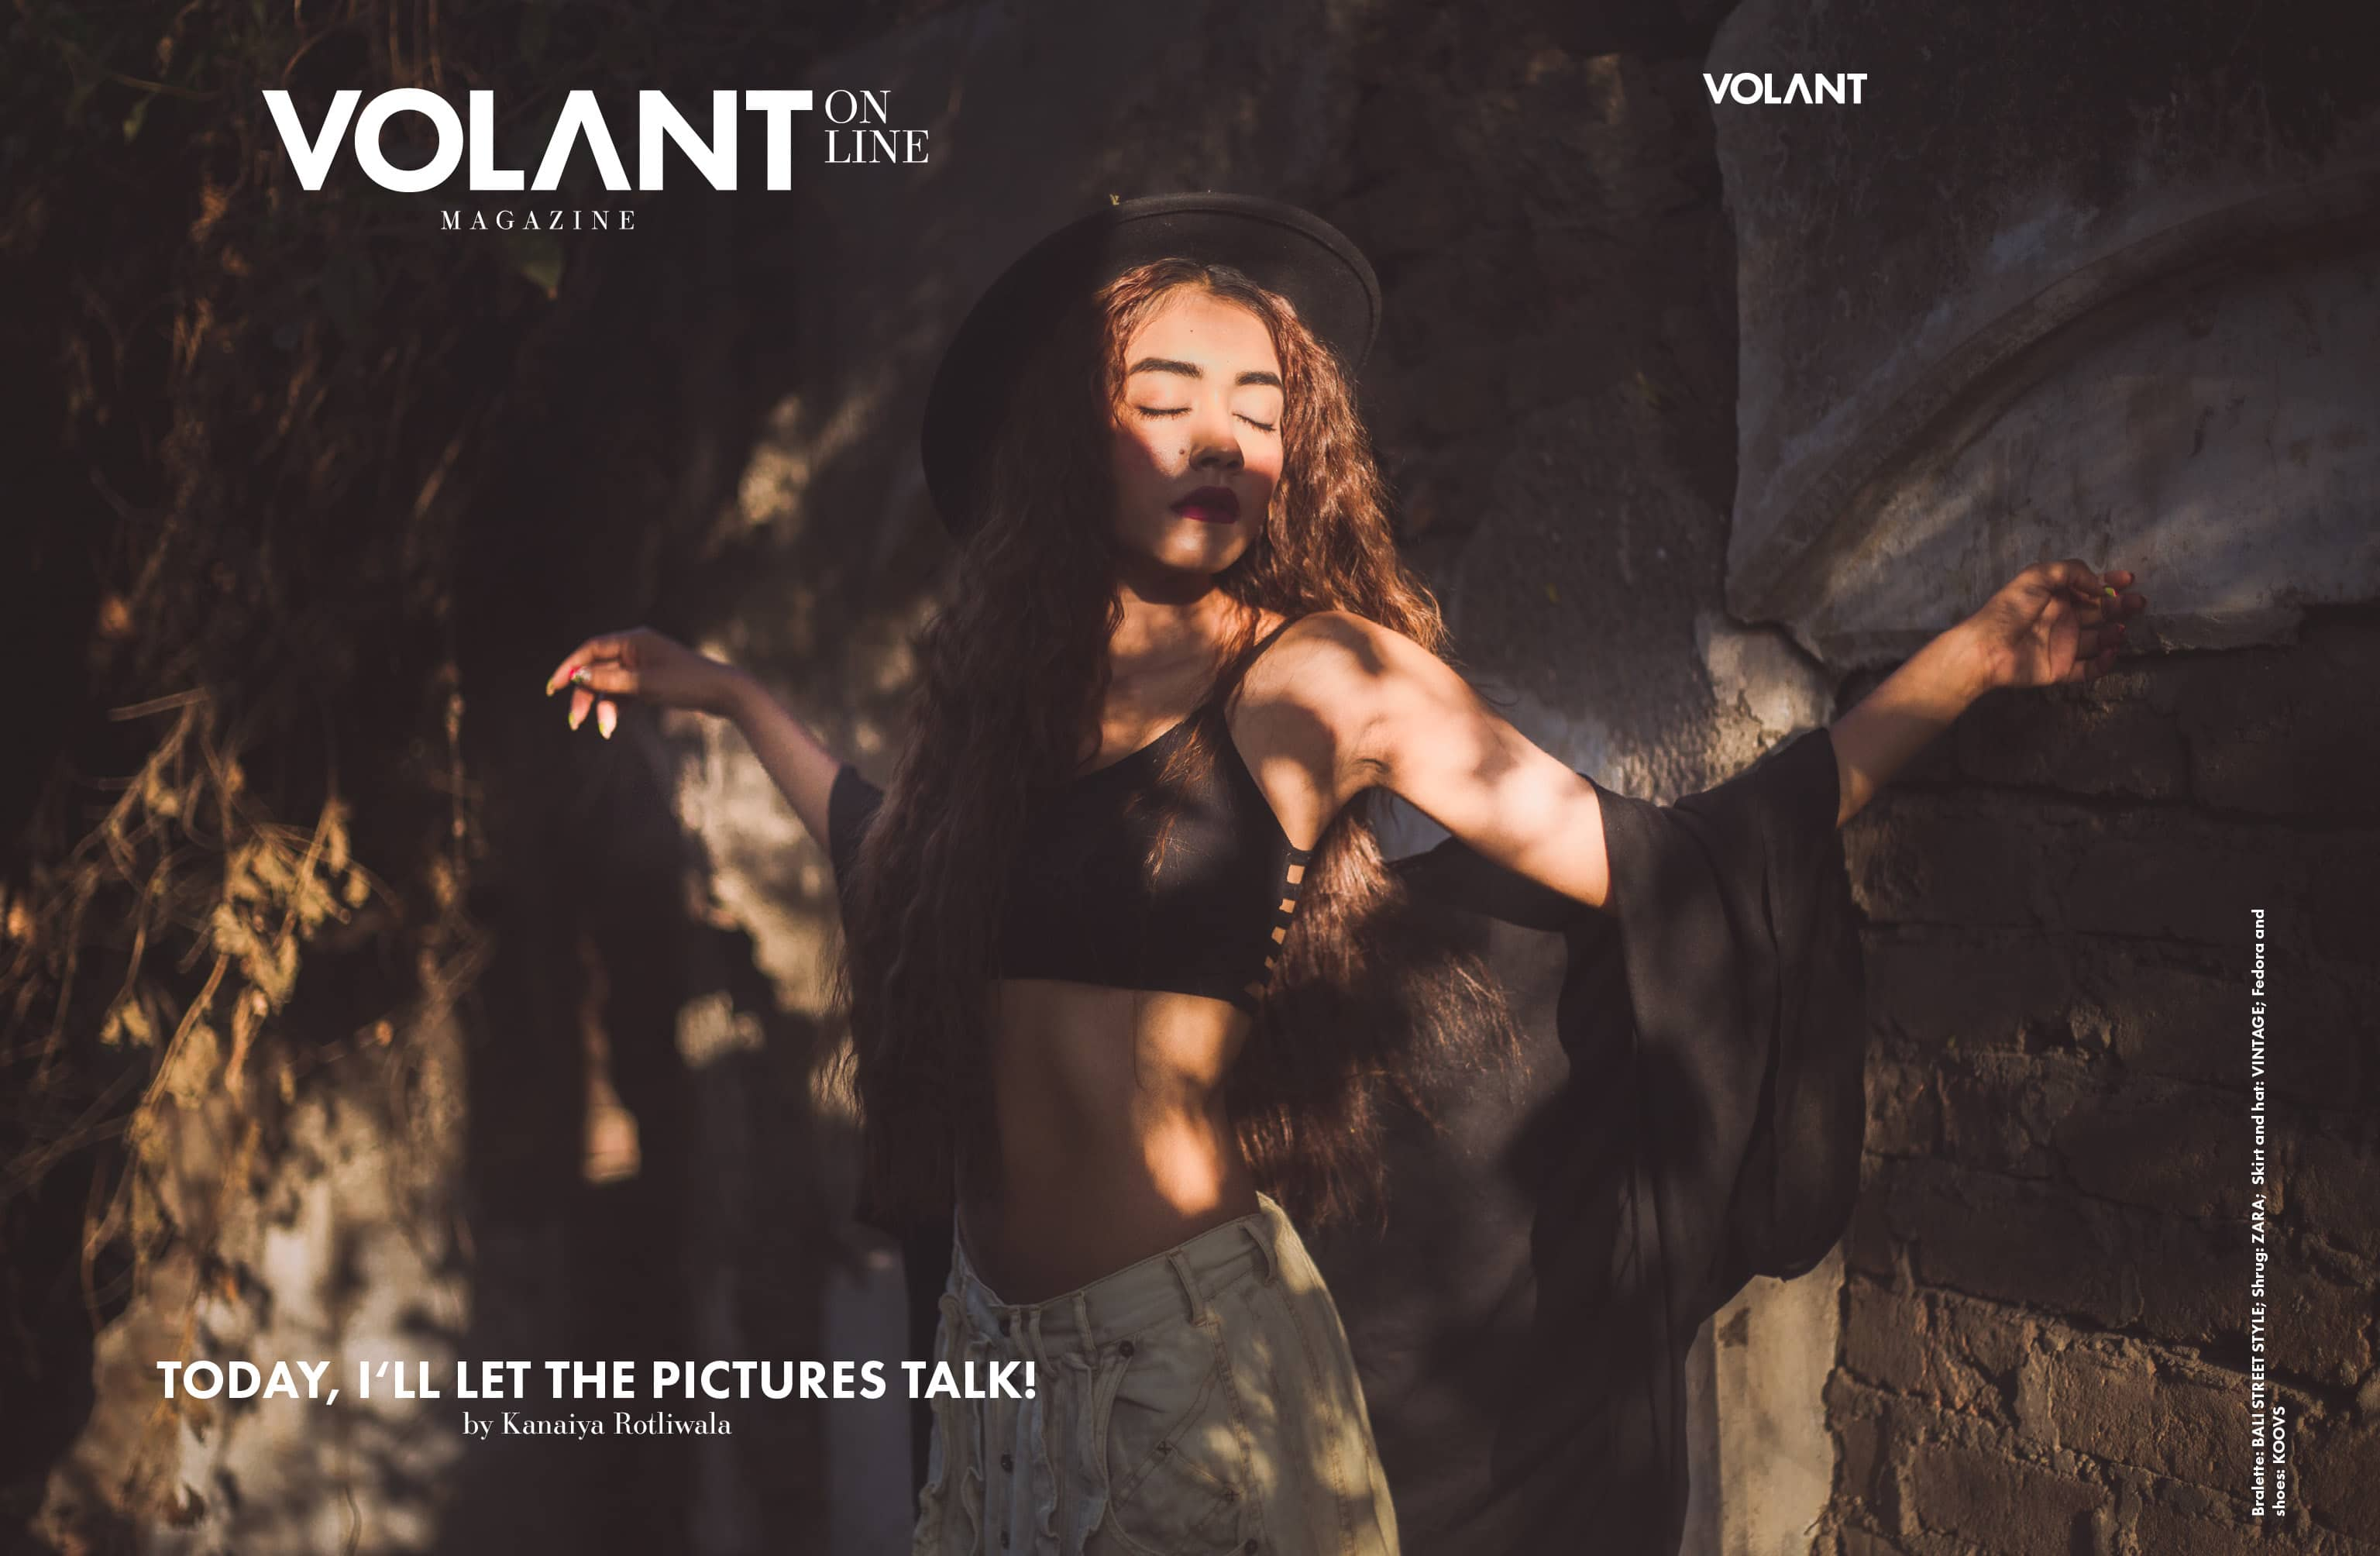 volant-webitorial-todayiwillletthepicturestalk